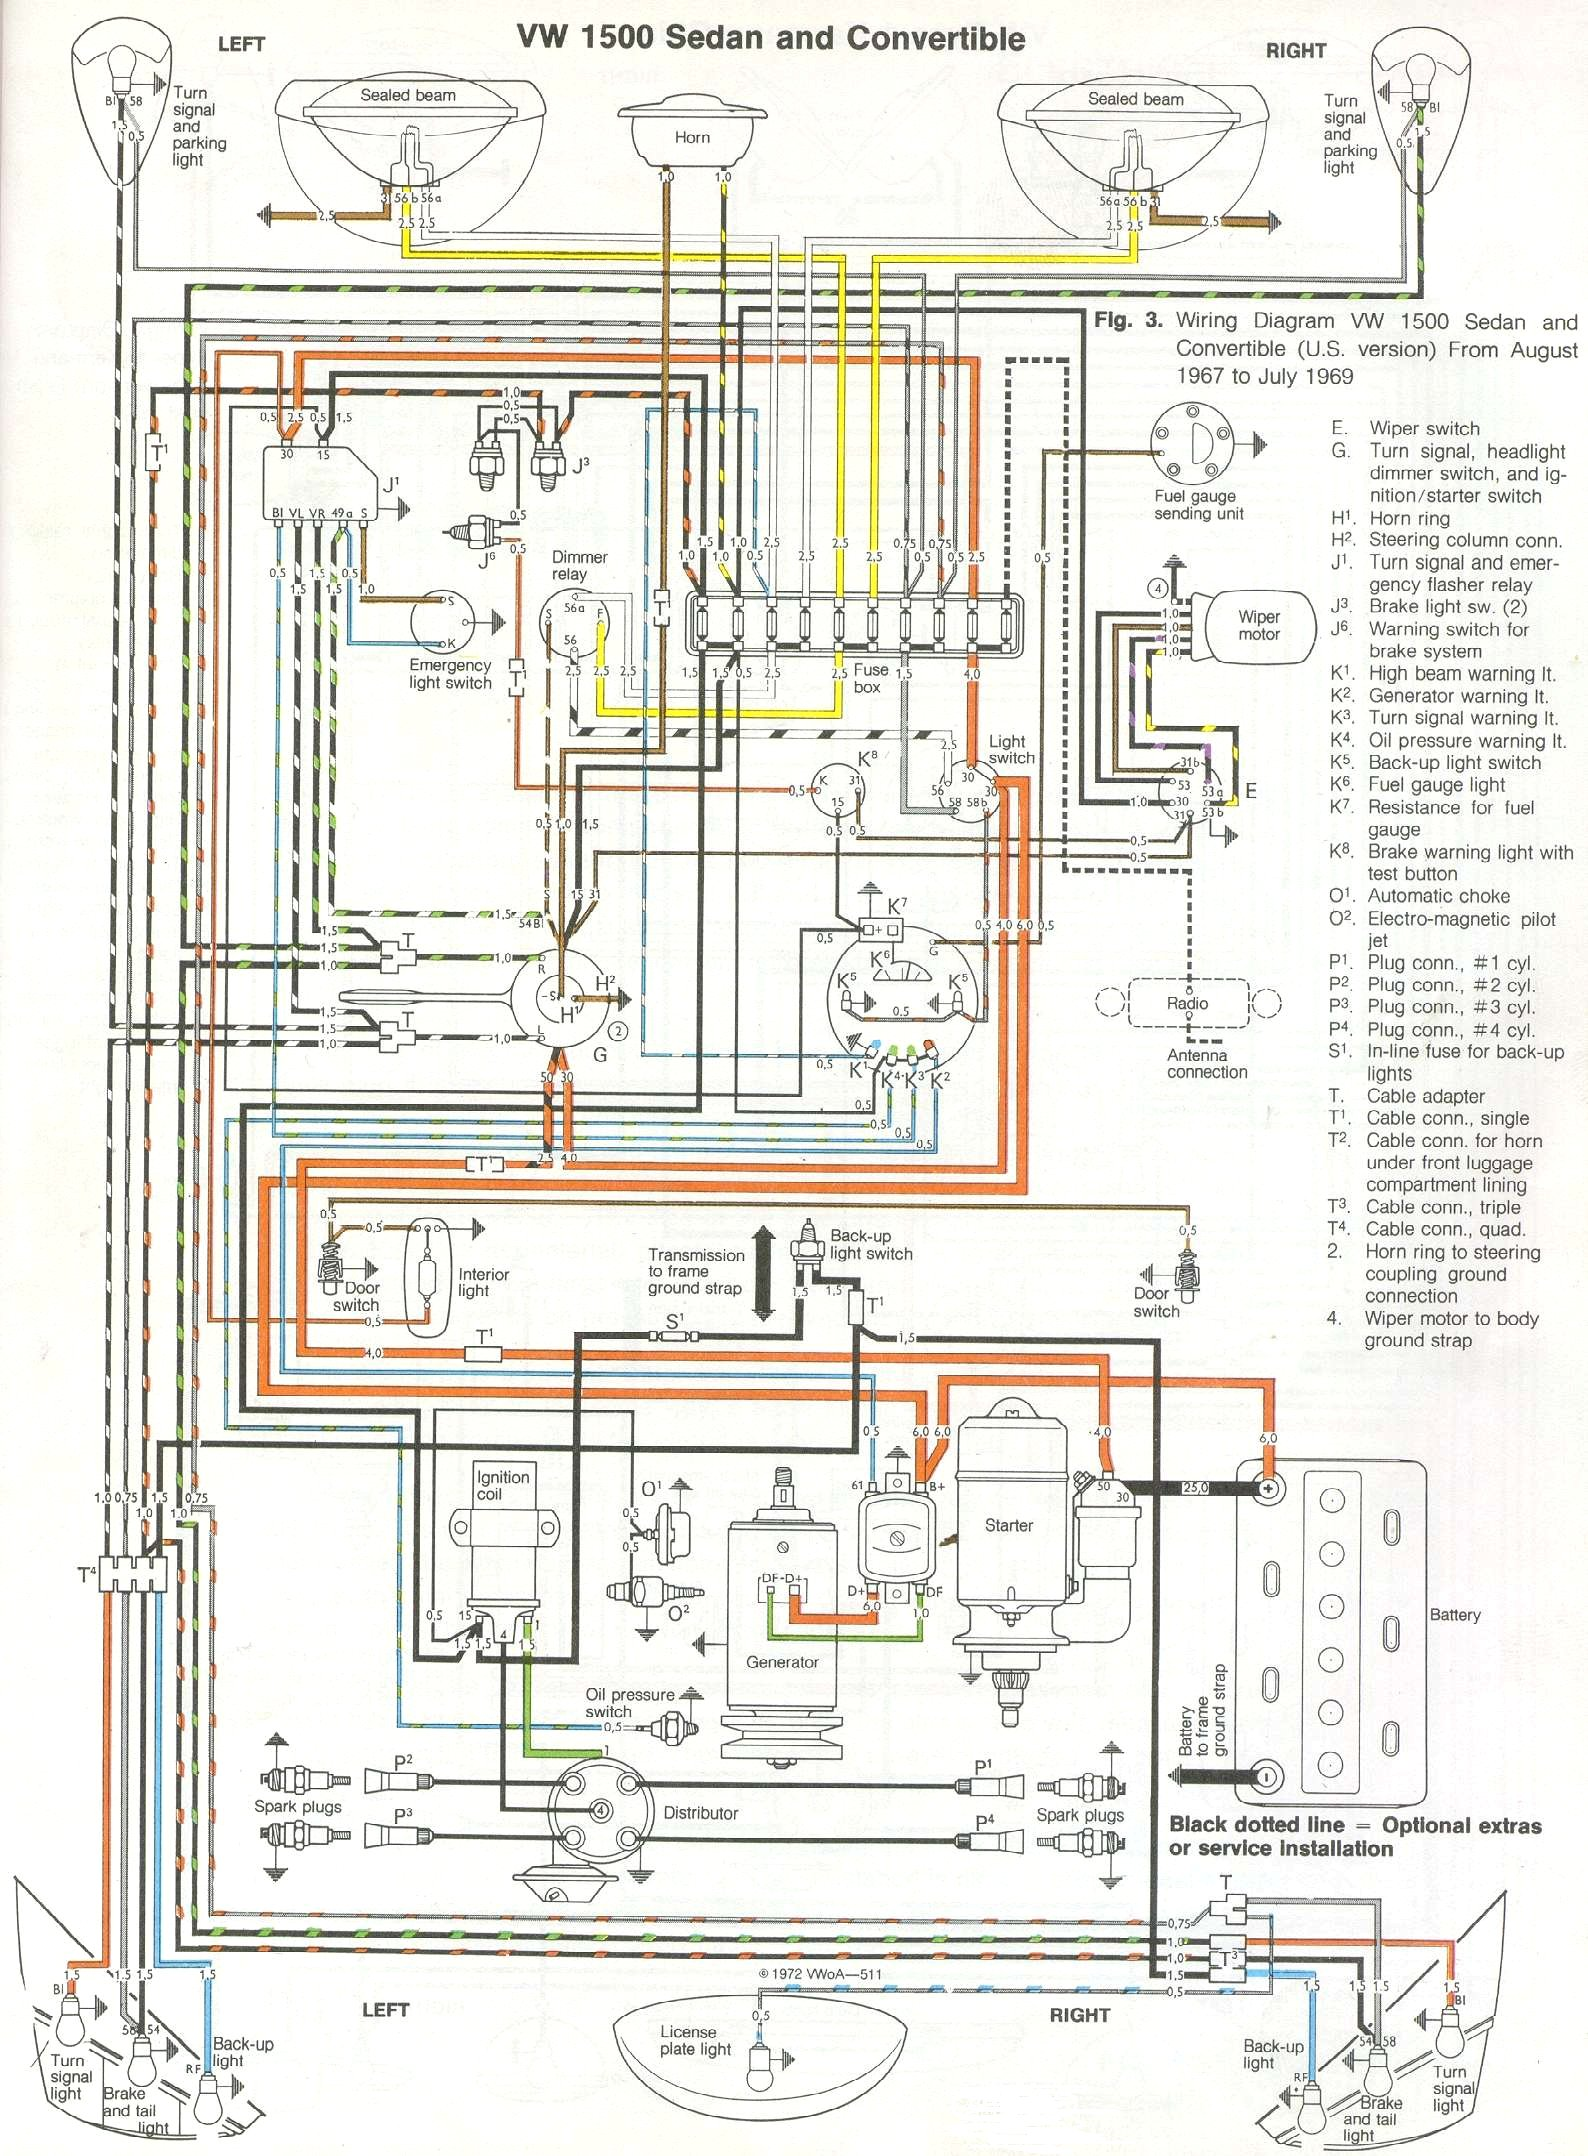 bug_6869 1969 71 beetle wiring diagram thegoldenbug com 1970 vw wiring diagram at mifinder.co